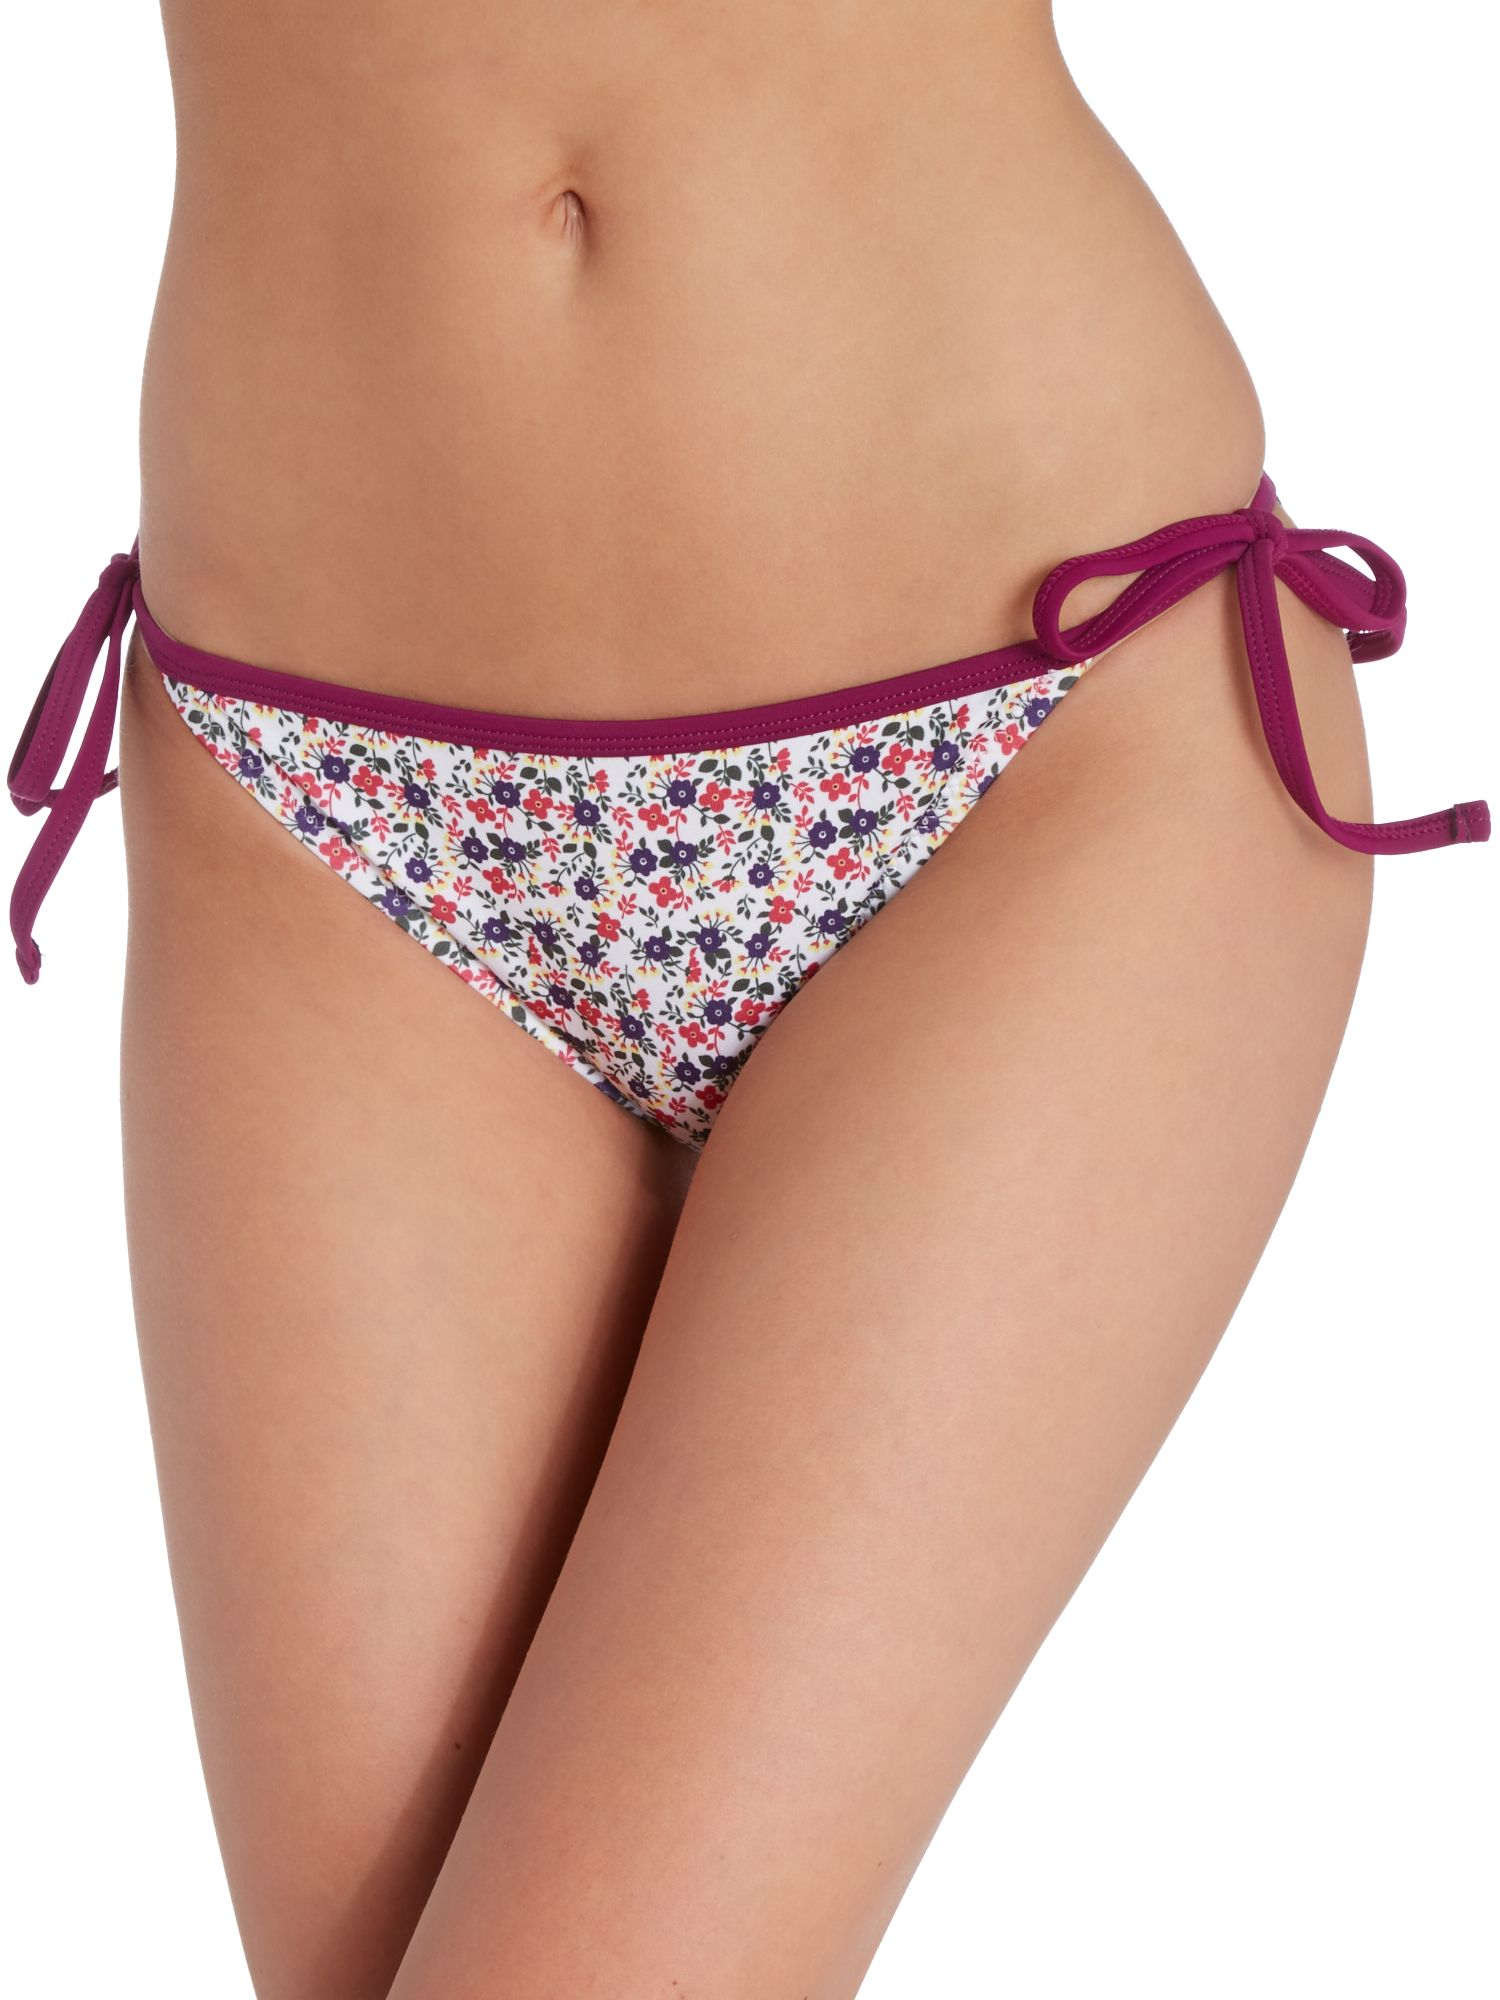 Ditsy floral tie side brief